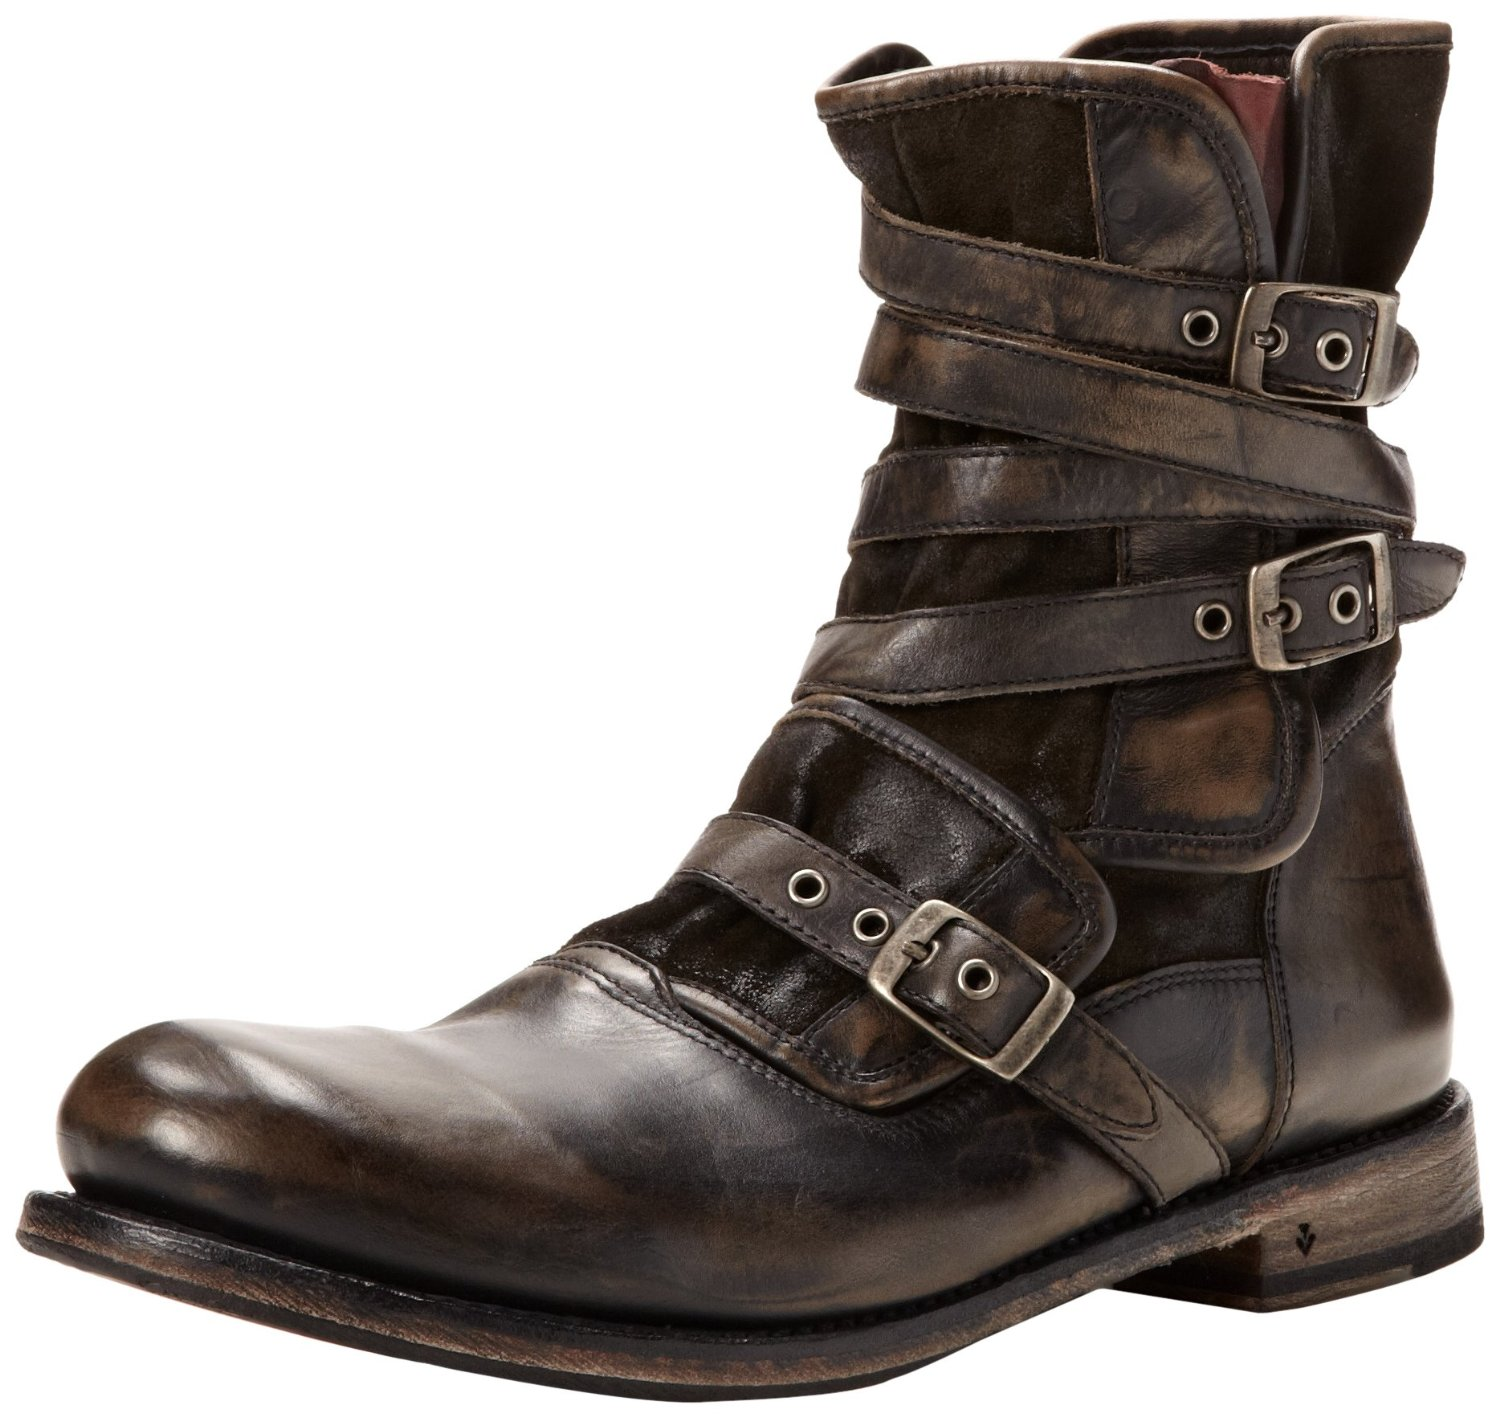 Mens Boots With Buckle Boot Yc